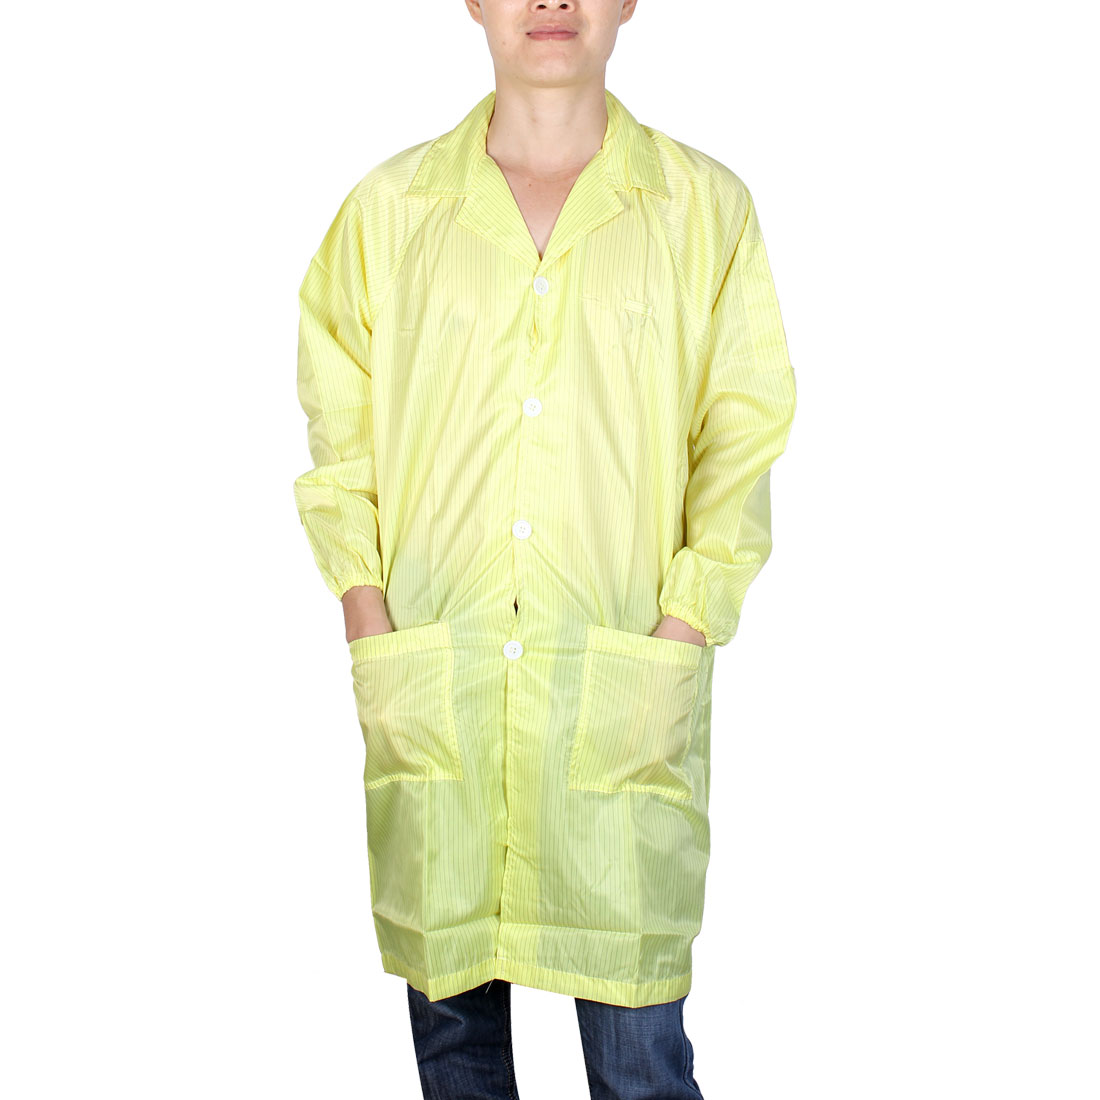 Unisex Long Sleeve Stripes Pattern Anti Static Overalls Coat Yellow L